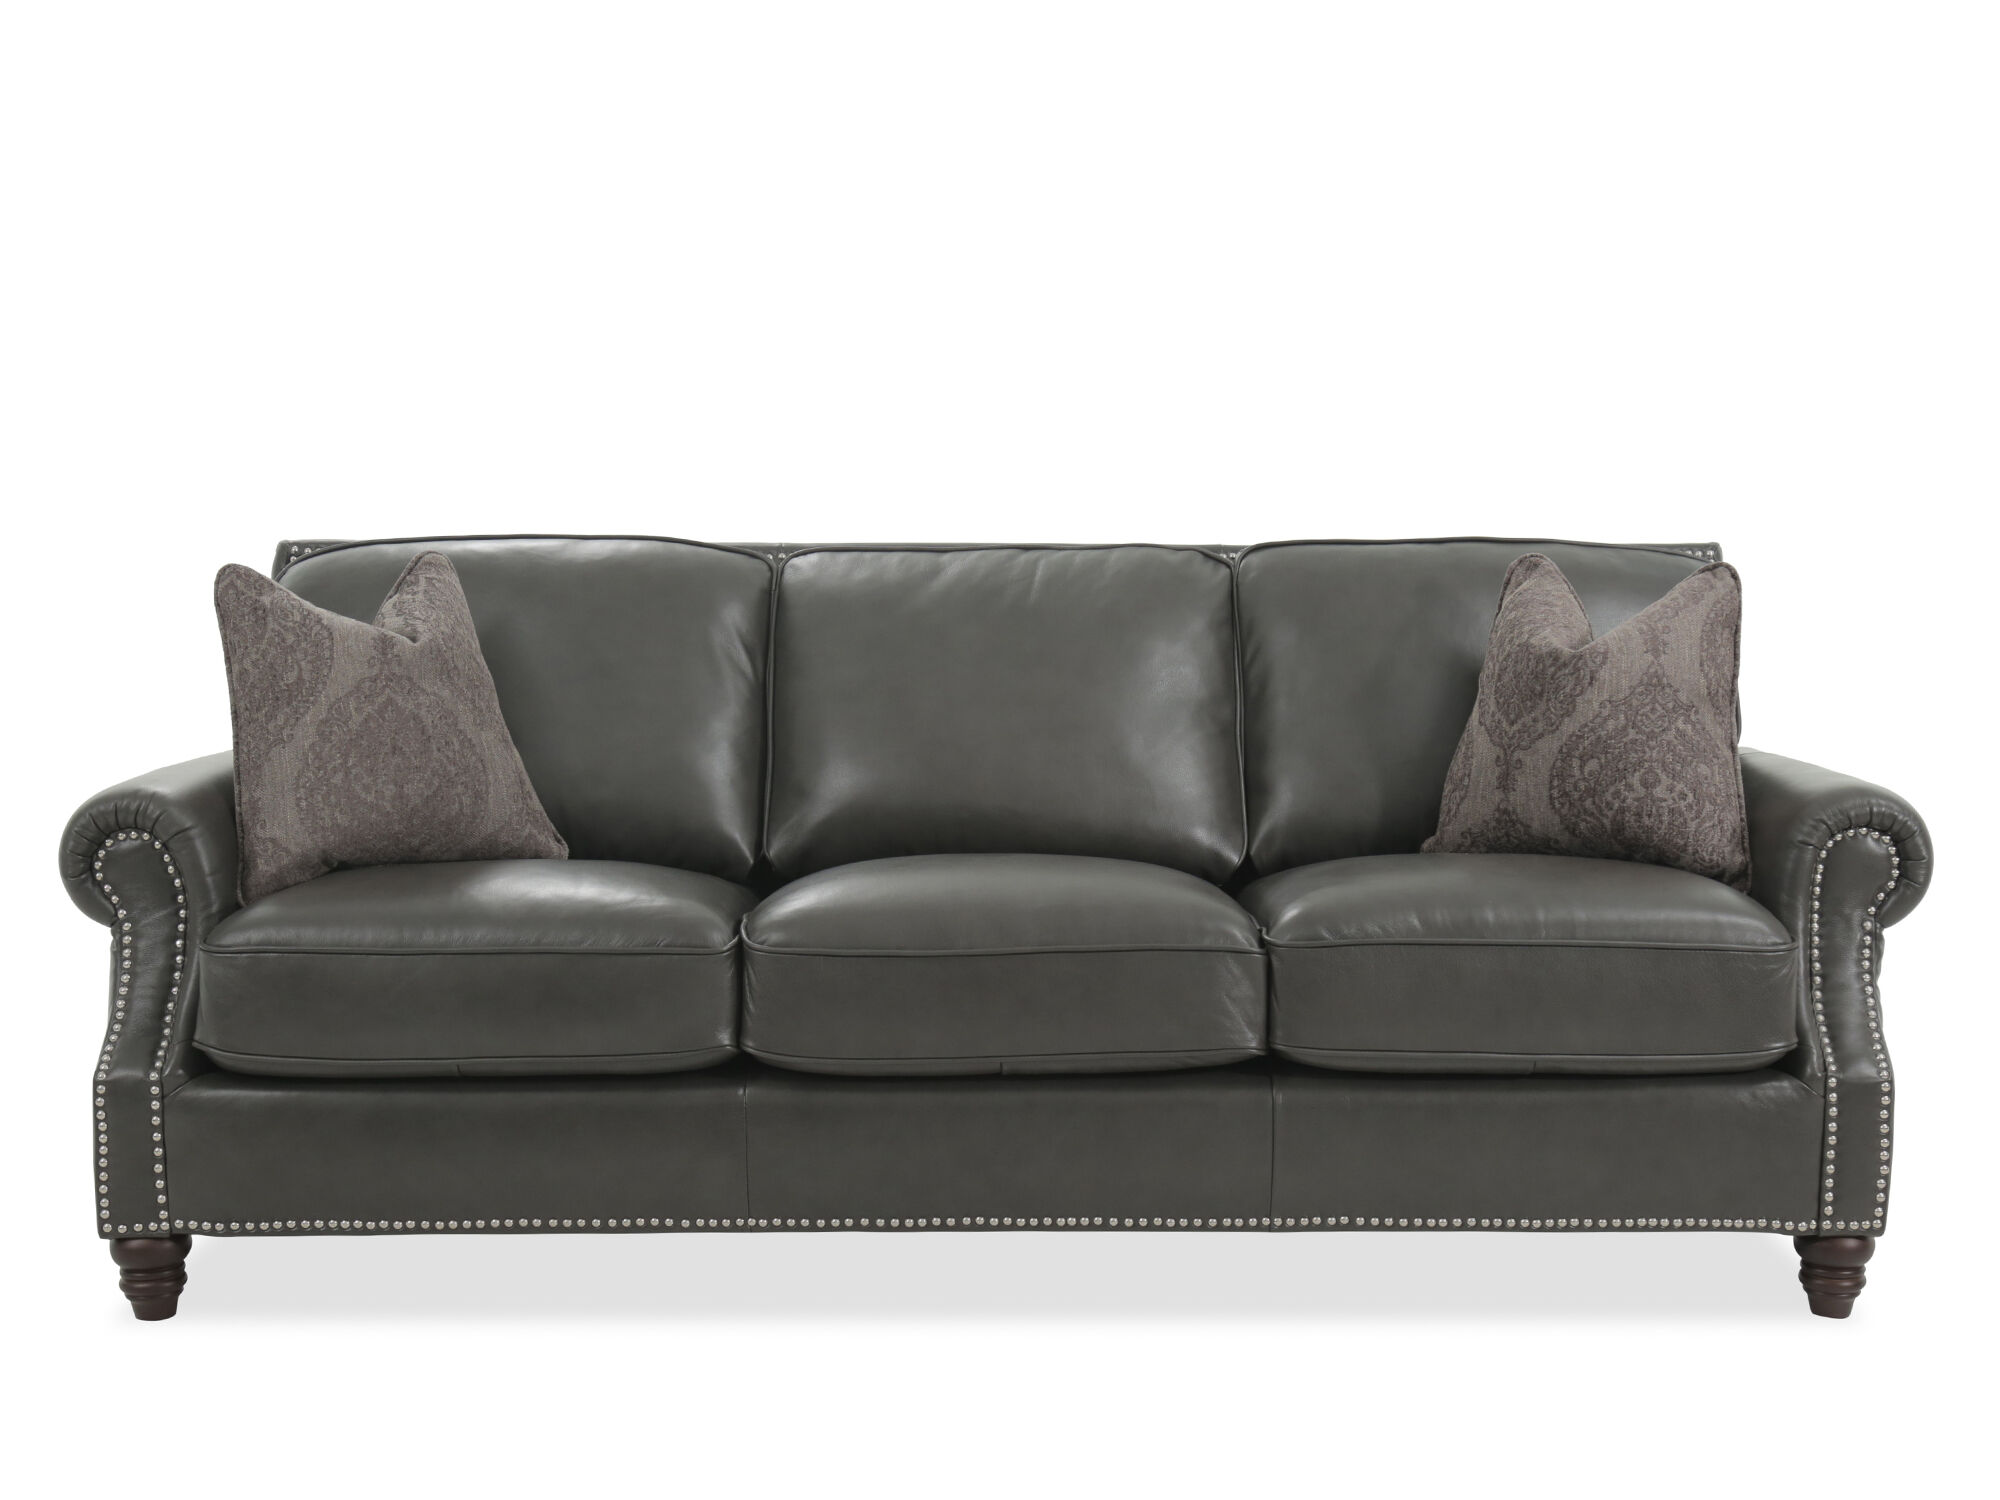 leather nailhead sofa set georgia accented in gray mathis brothers